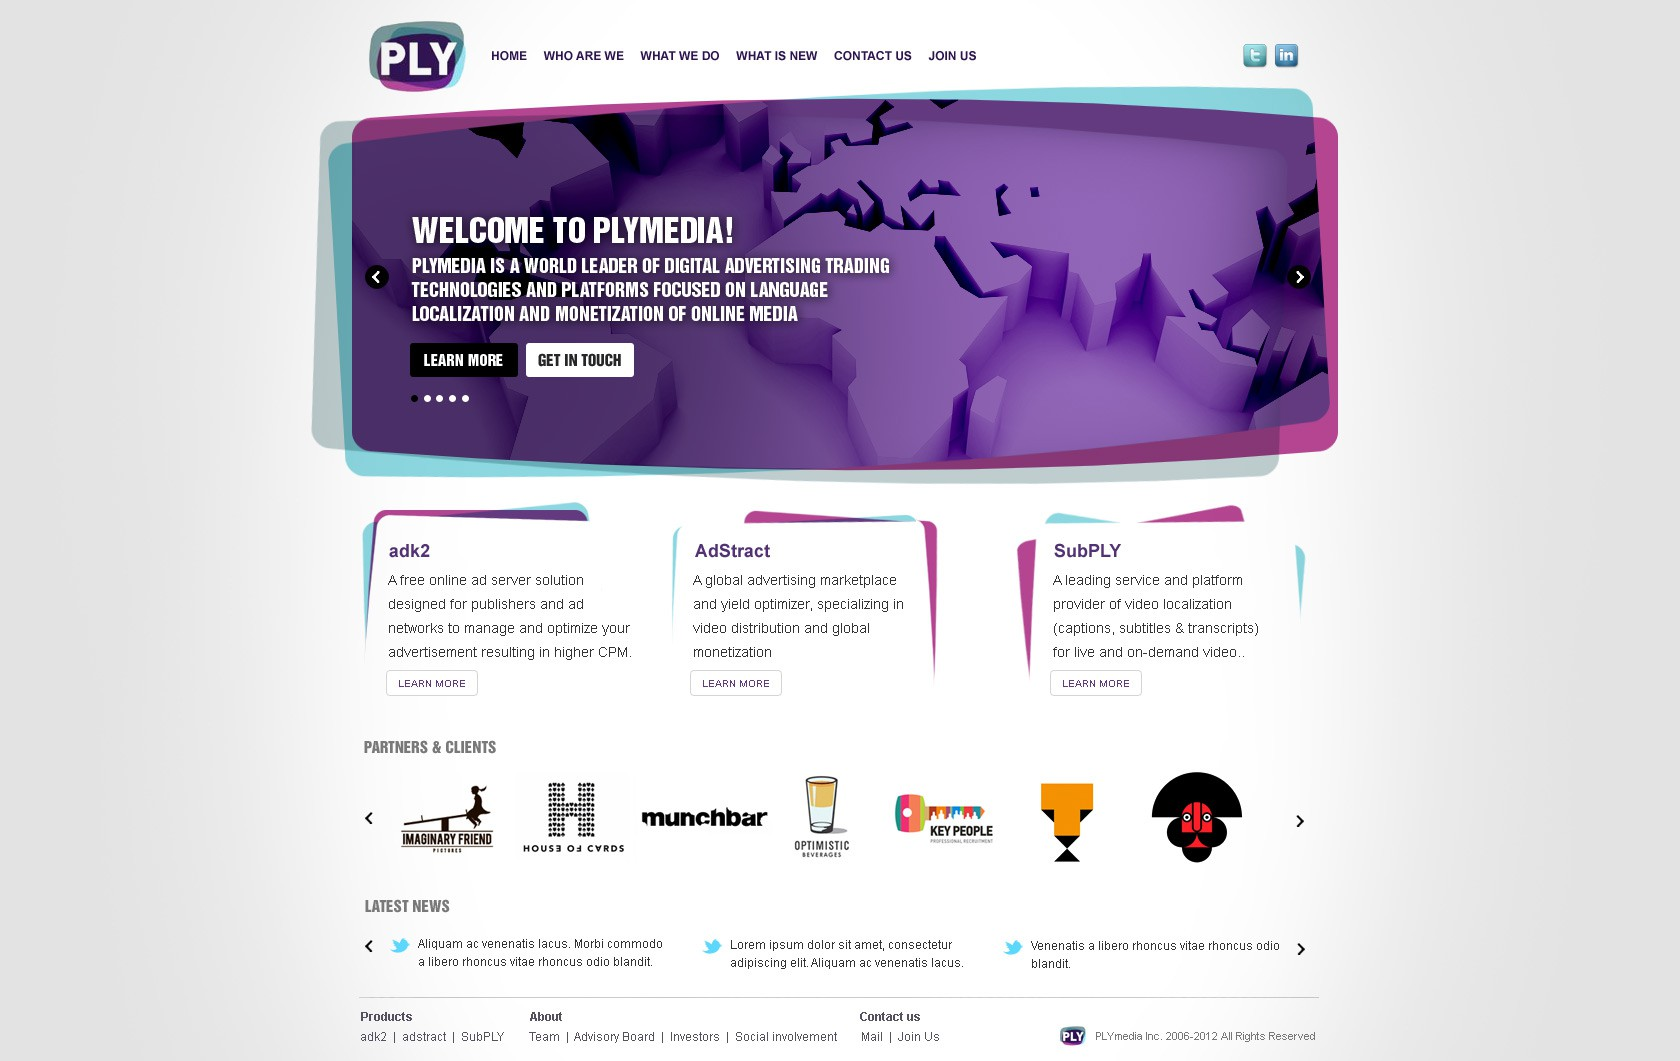 Help PLYmedia with a new website design